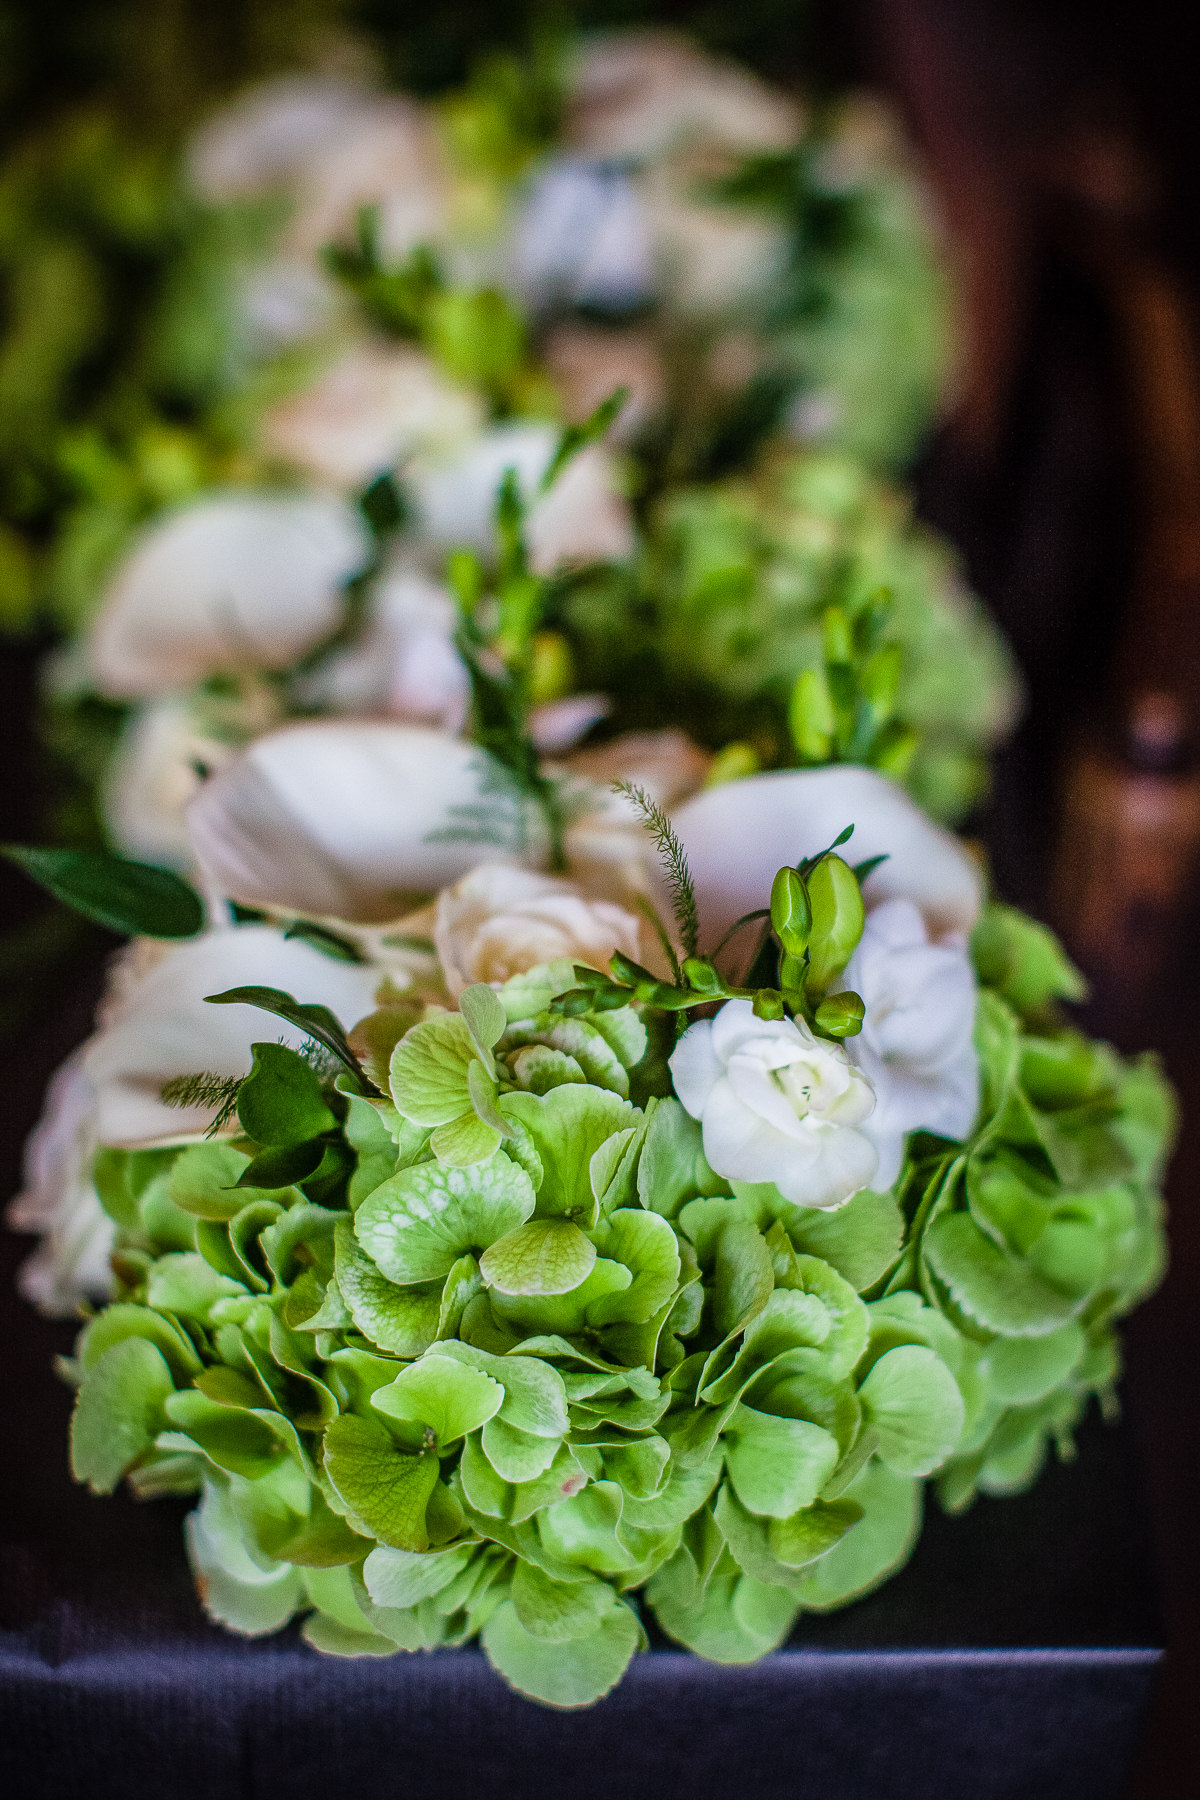 Beautiful cream and green wedding bouquet - Shropshire based Wedding Photographer Charlotte Giddings